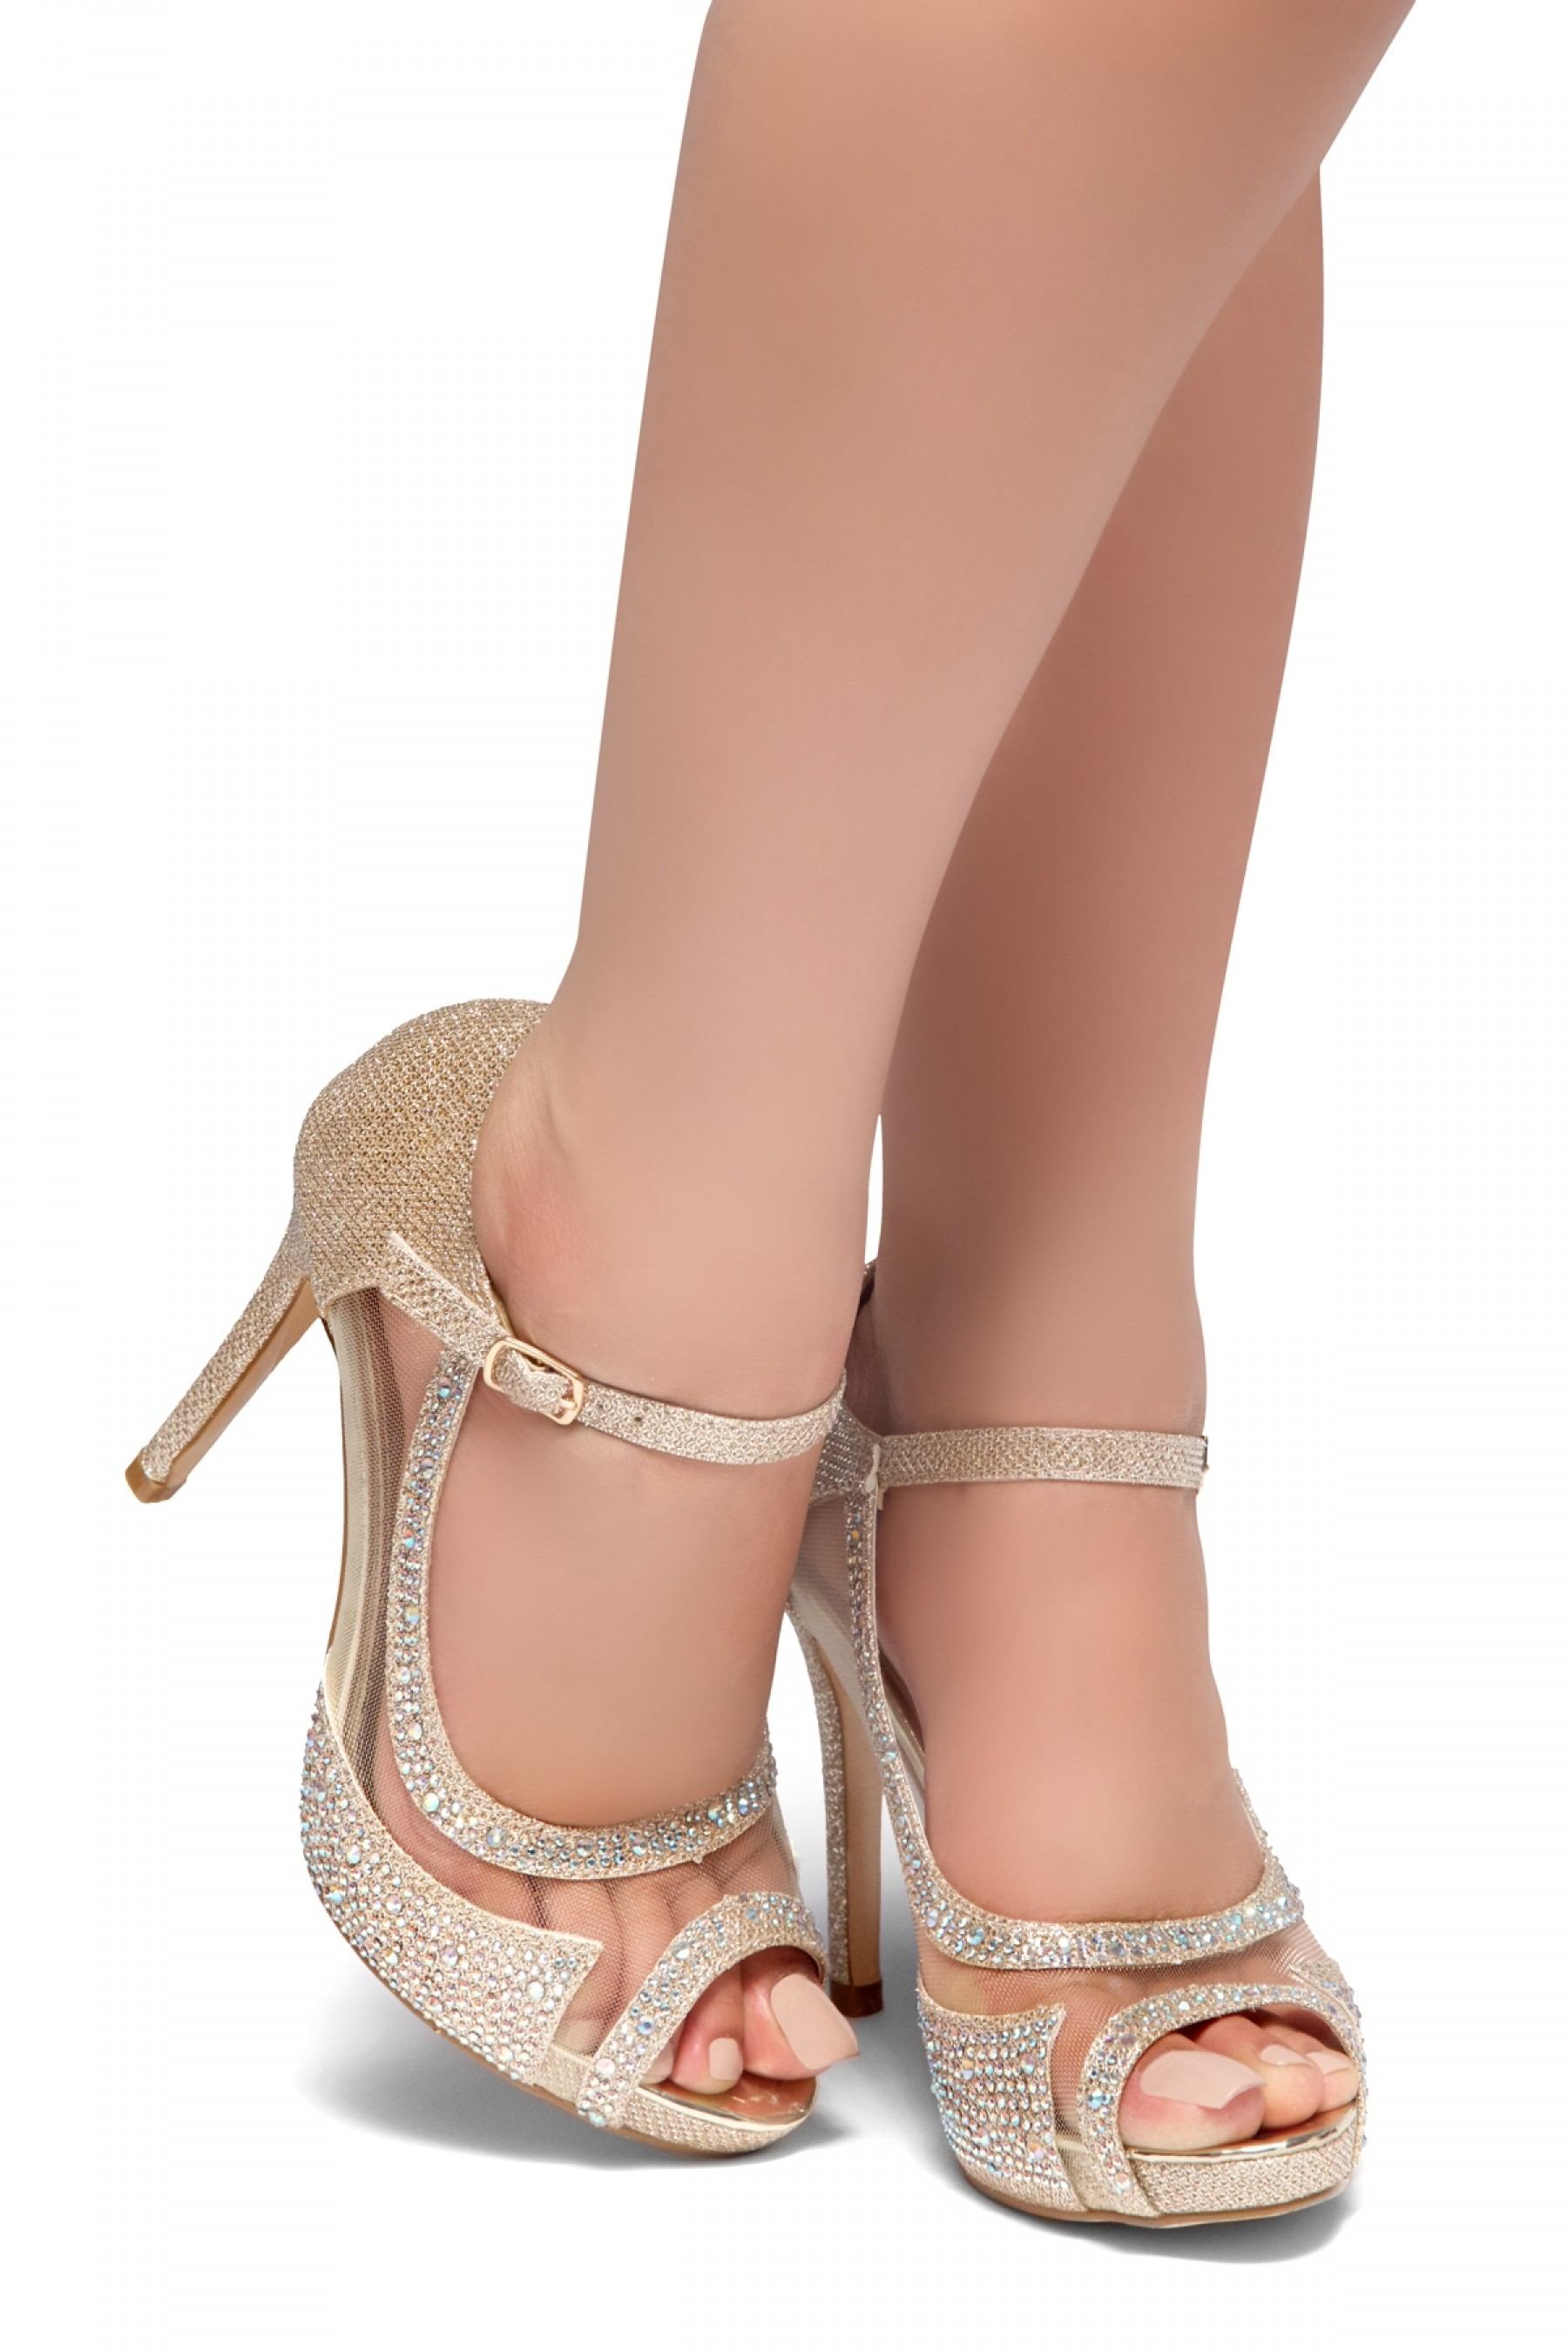 HerStyle MAY- Peep toe stiletto heel, jeweled embellishments pumps (Champagne)